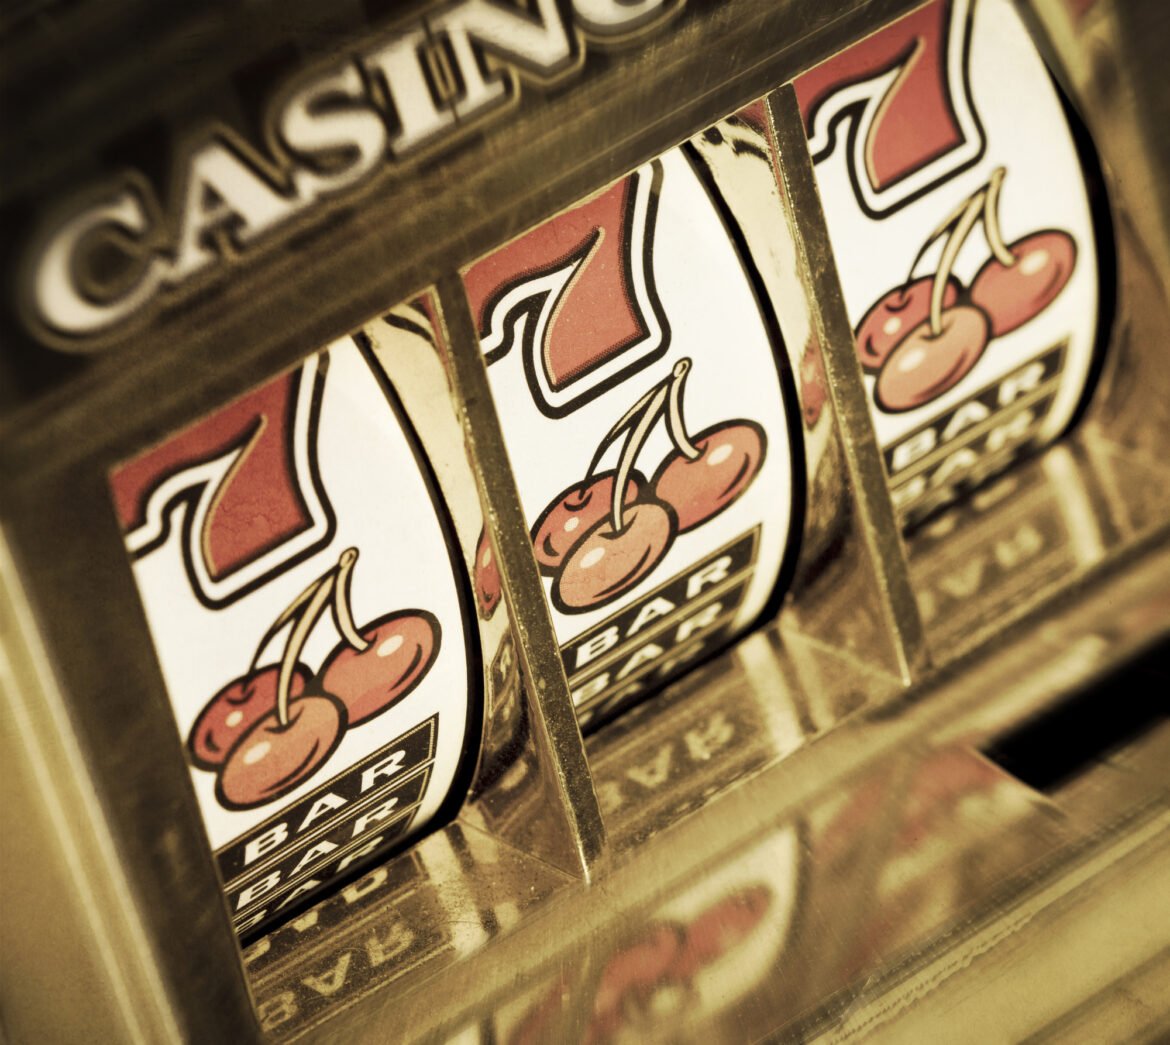 Playing online slot games are just as fun as playing at the actual casino. Keep reading to learn all about the best slot games to play online.